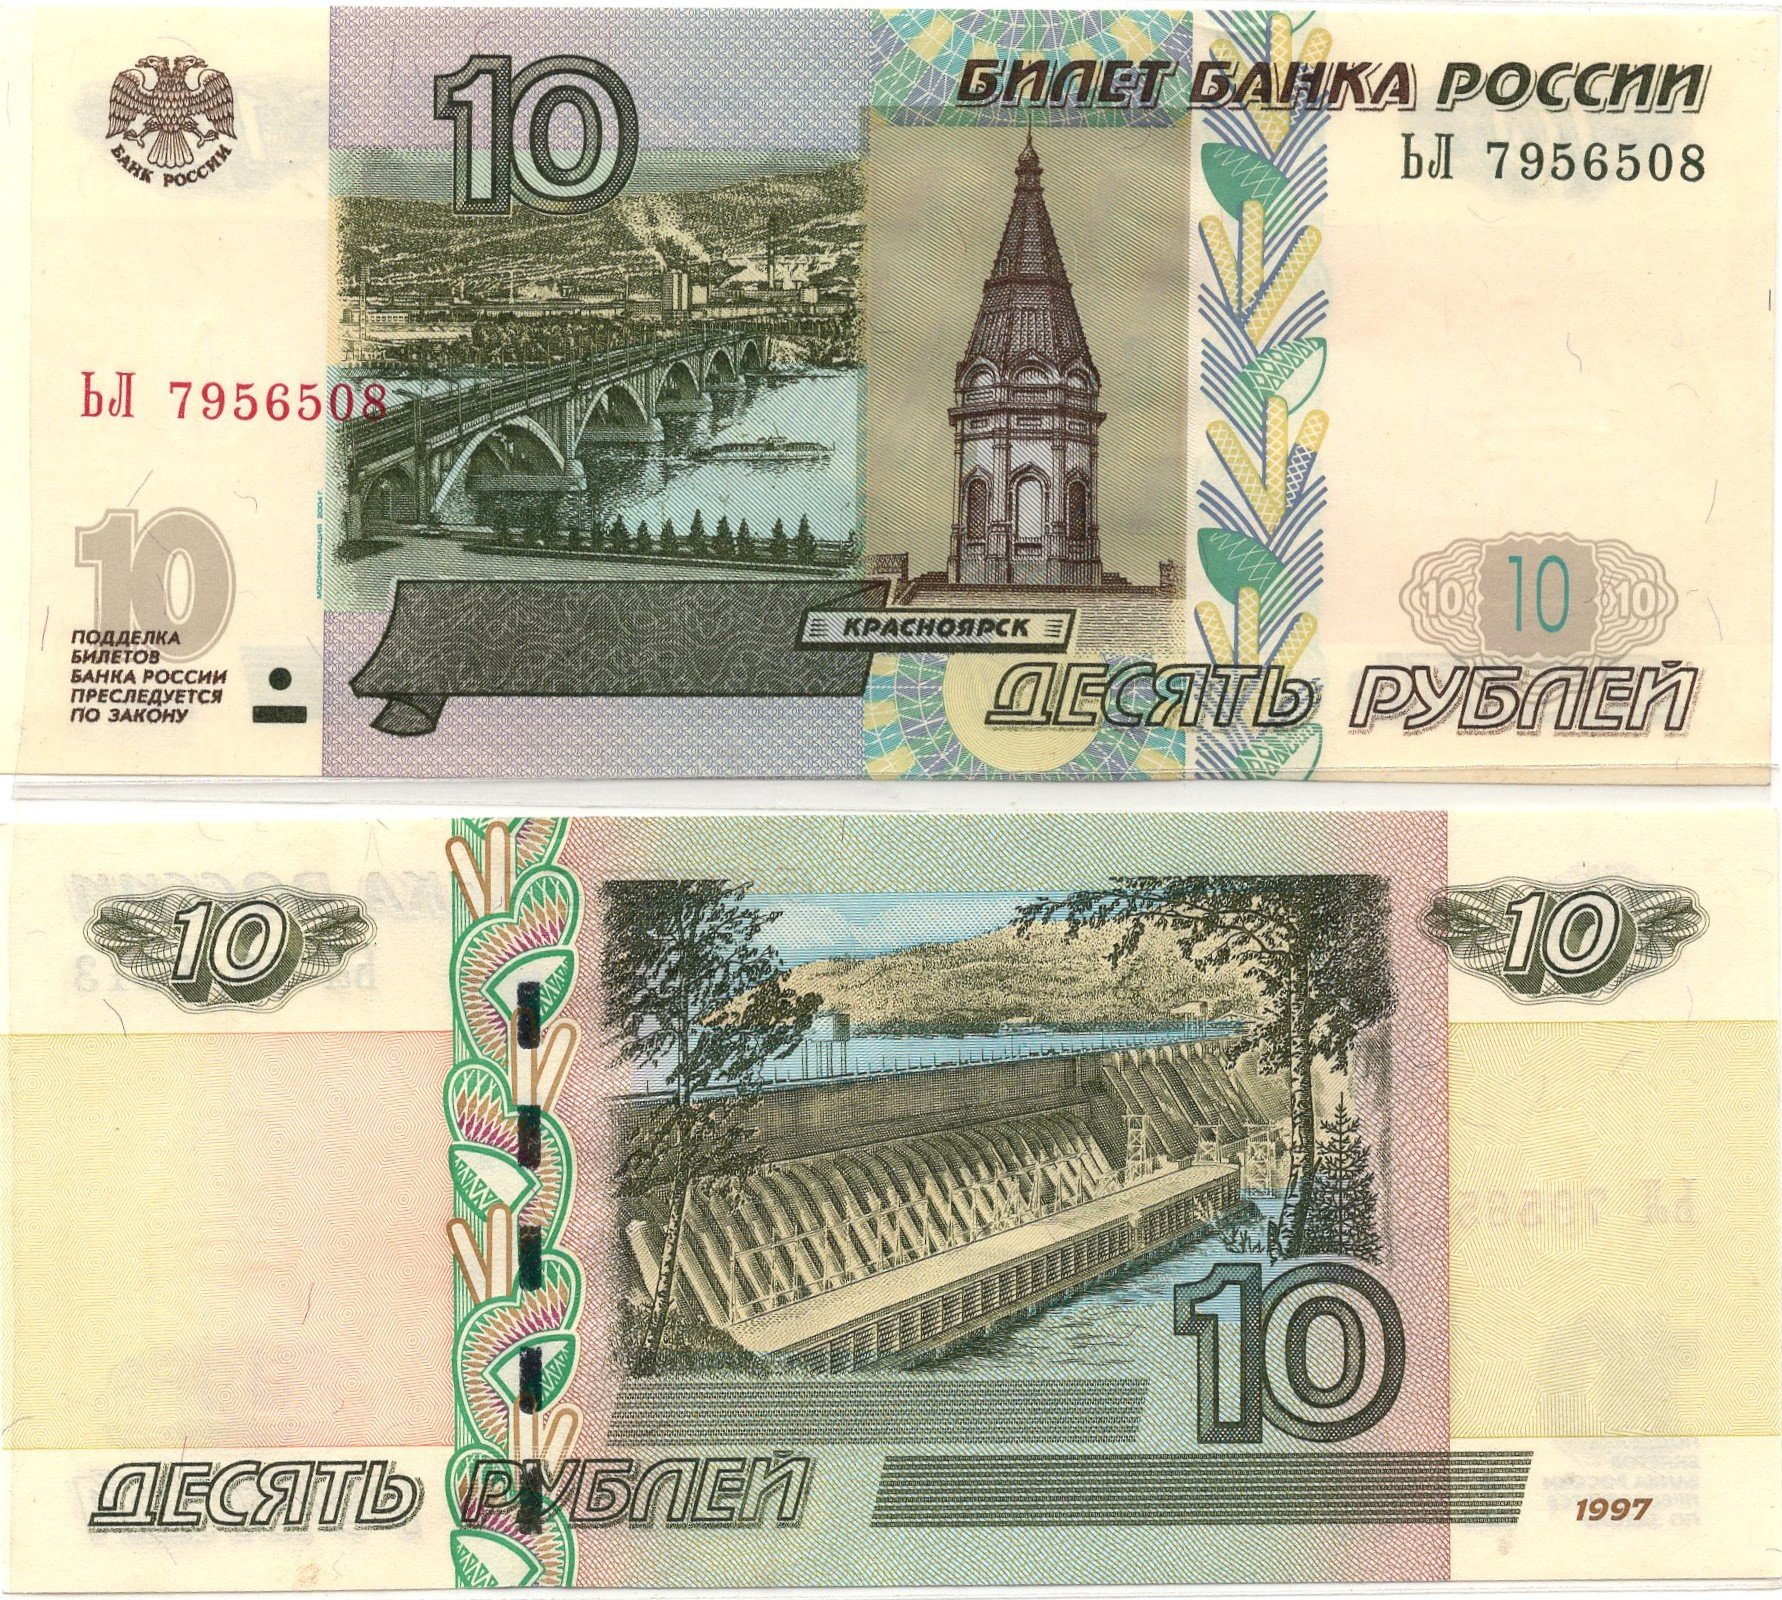 Russia 10 roubles 1997 banknote for sale